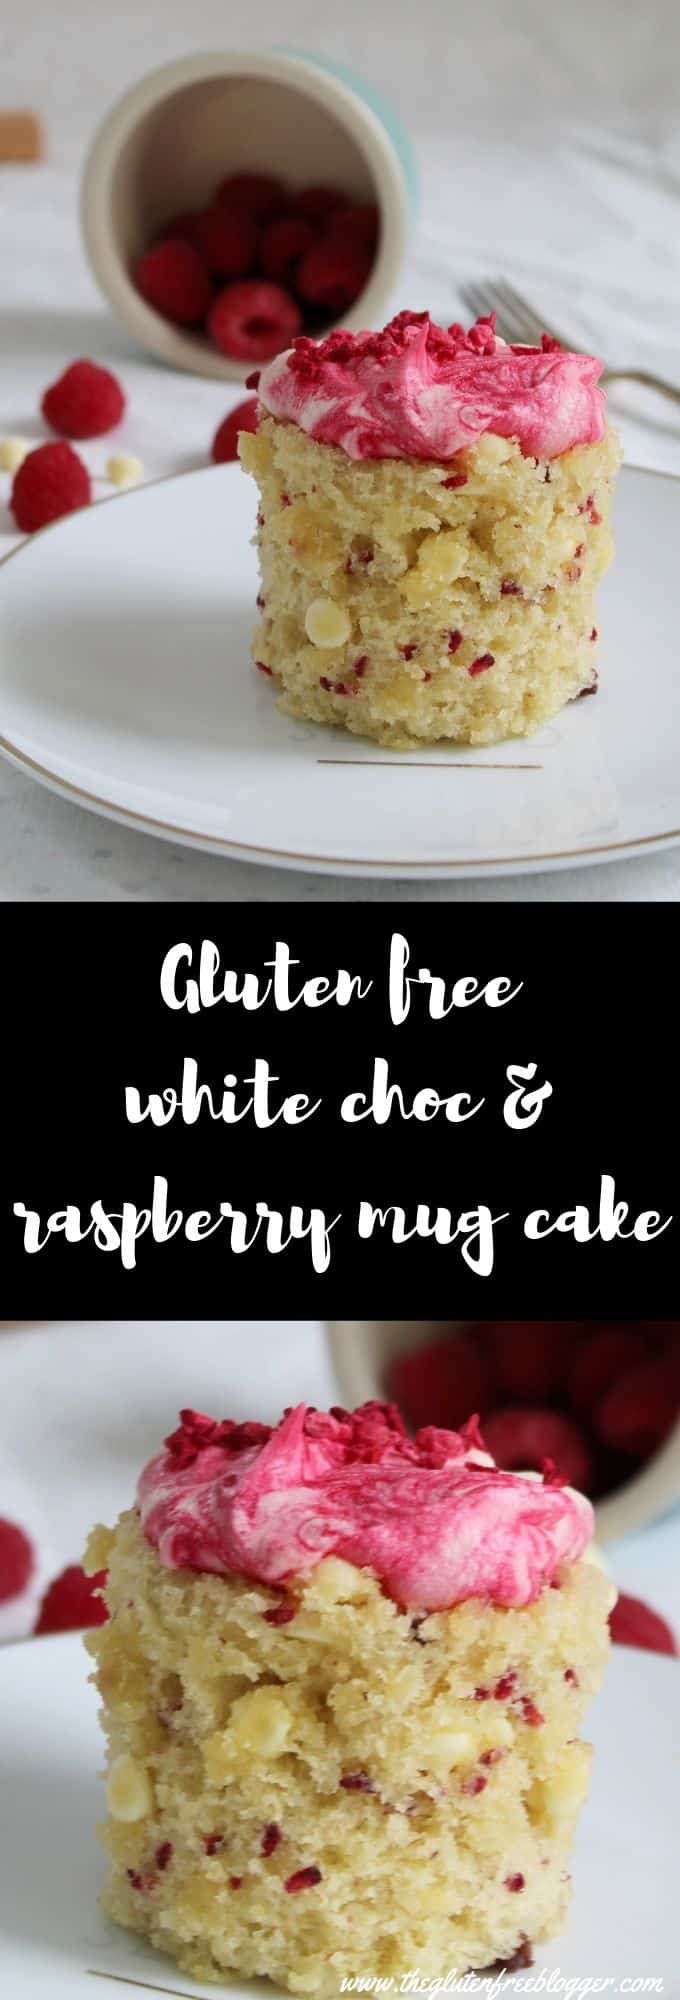 gluten free mug cake recipes - easy mug cake - coeliac friendly dairy free mug cake recipe white choc raspberry